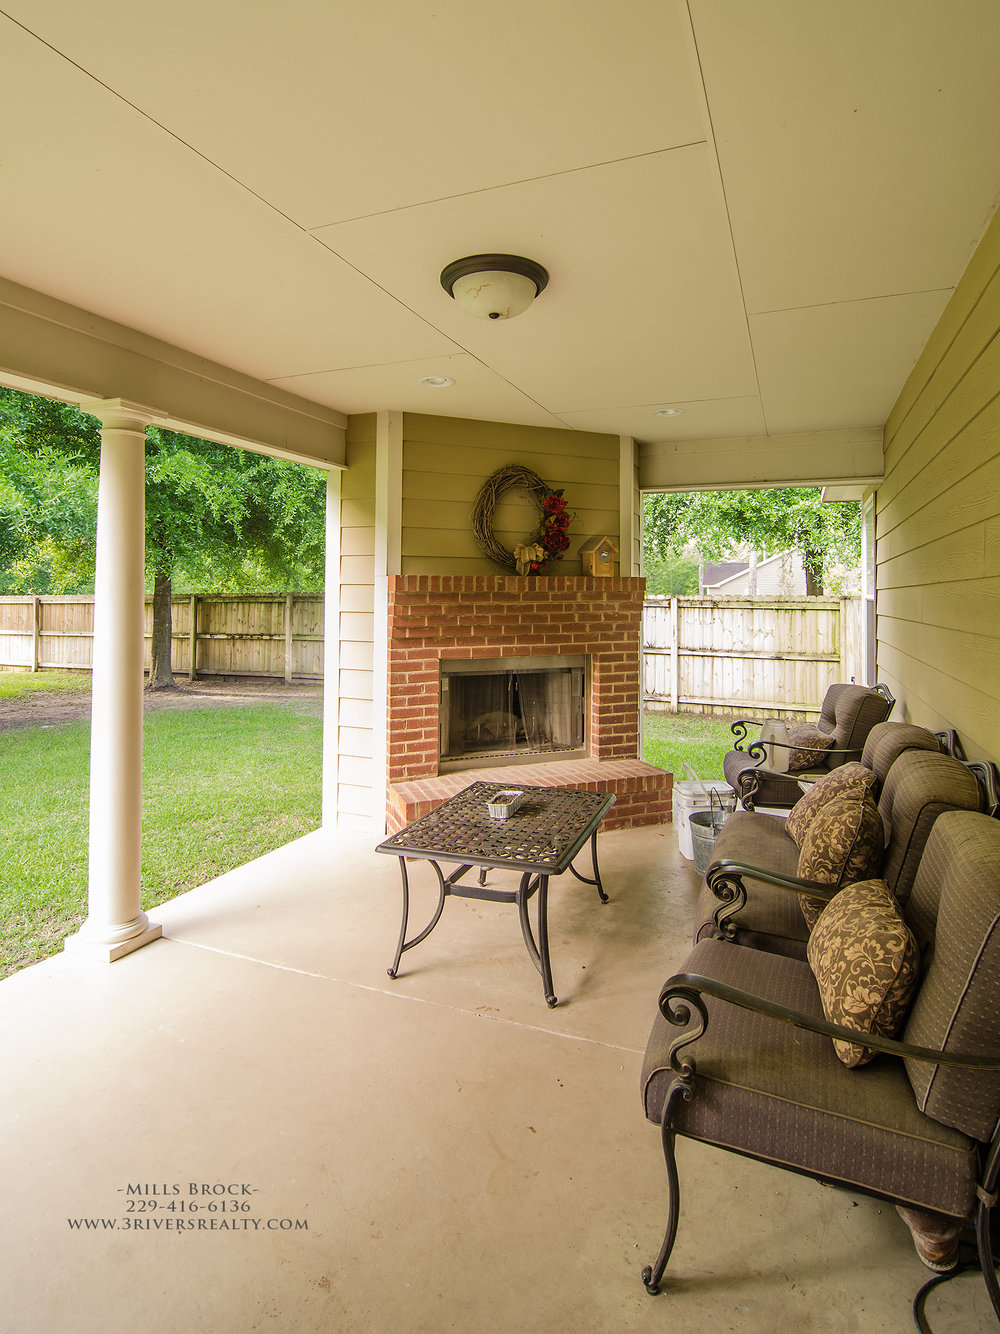 3riversrealty_bainbridge-georgia-home-for-sale_3-bed-2-bath_outdoor-fireplace_three-rivers-realty_mills-brock_Taurus-USA_-pool_back-porch-fireplace - Copy.jpg